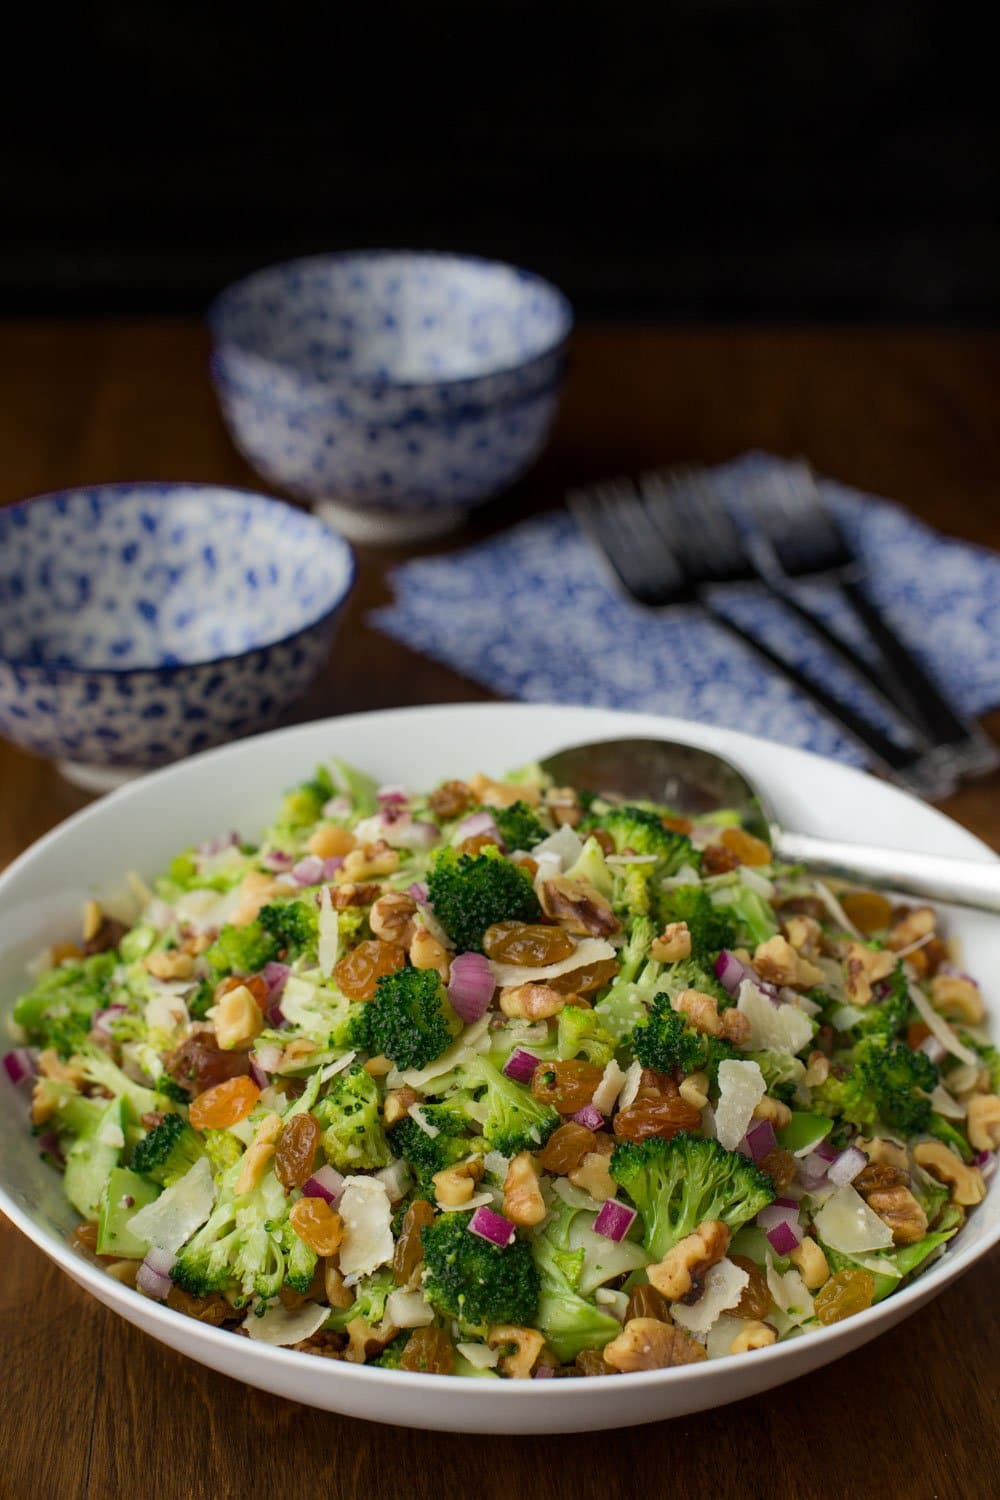 Shaved Broccoli Parmesan Salad with Lemon Mustard Dressing - healthy, unique and season-less, this delicious salad pairs perfectly with sandwiches, wraps and soups. It's also wonderful for parties and potlucks!